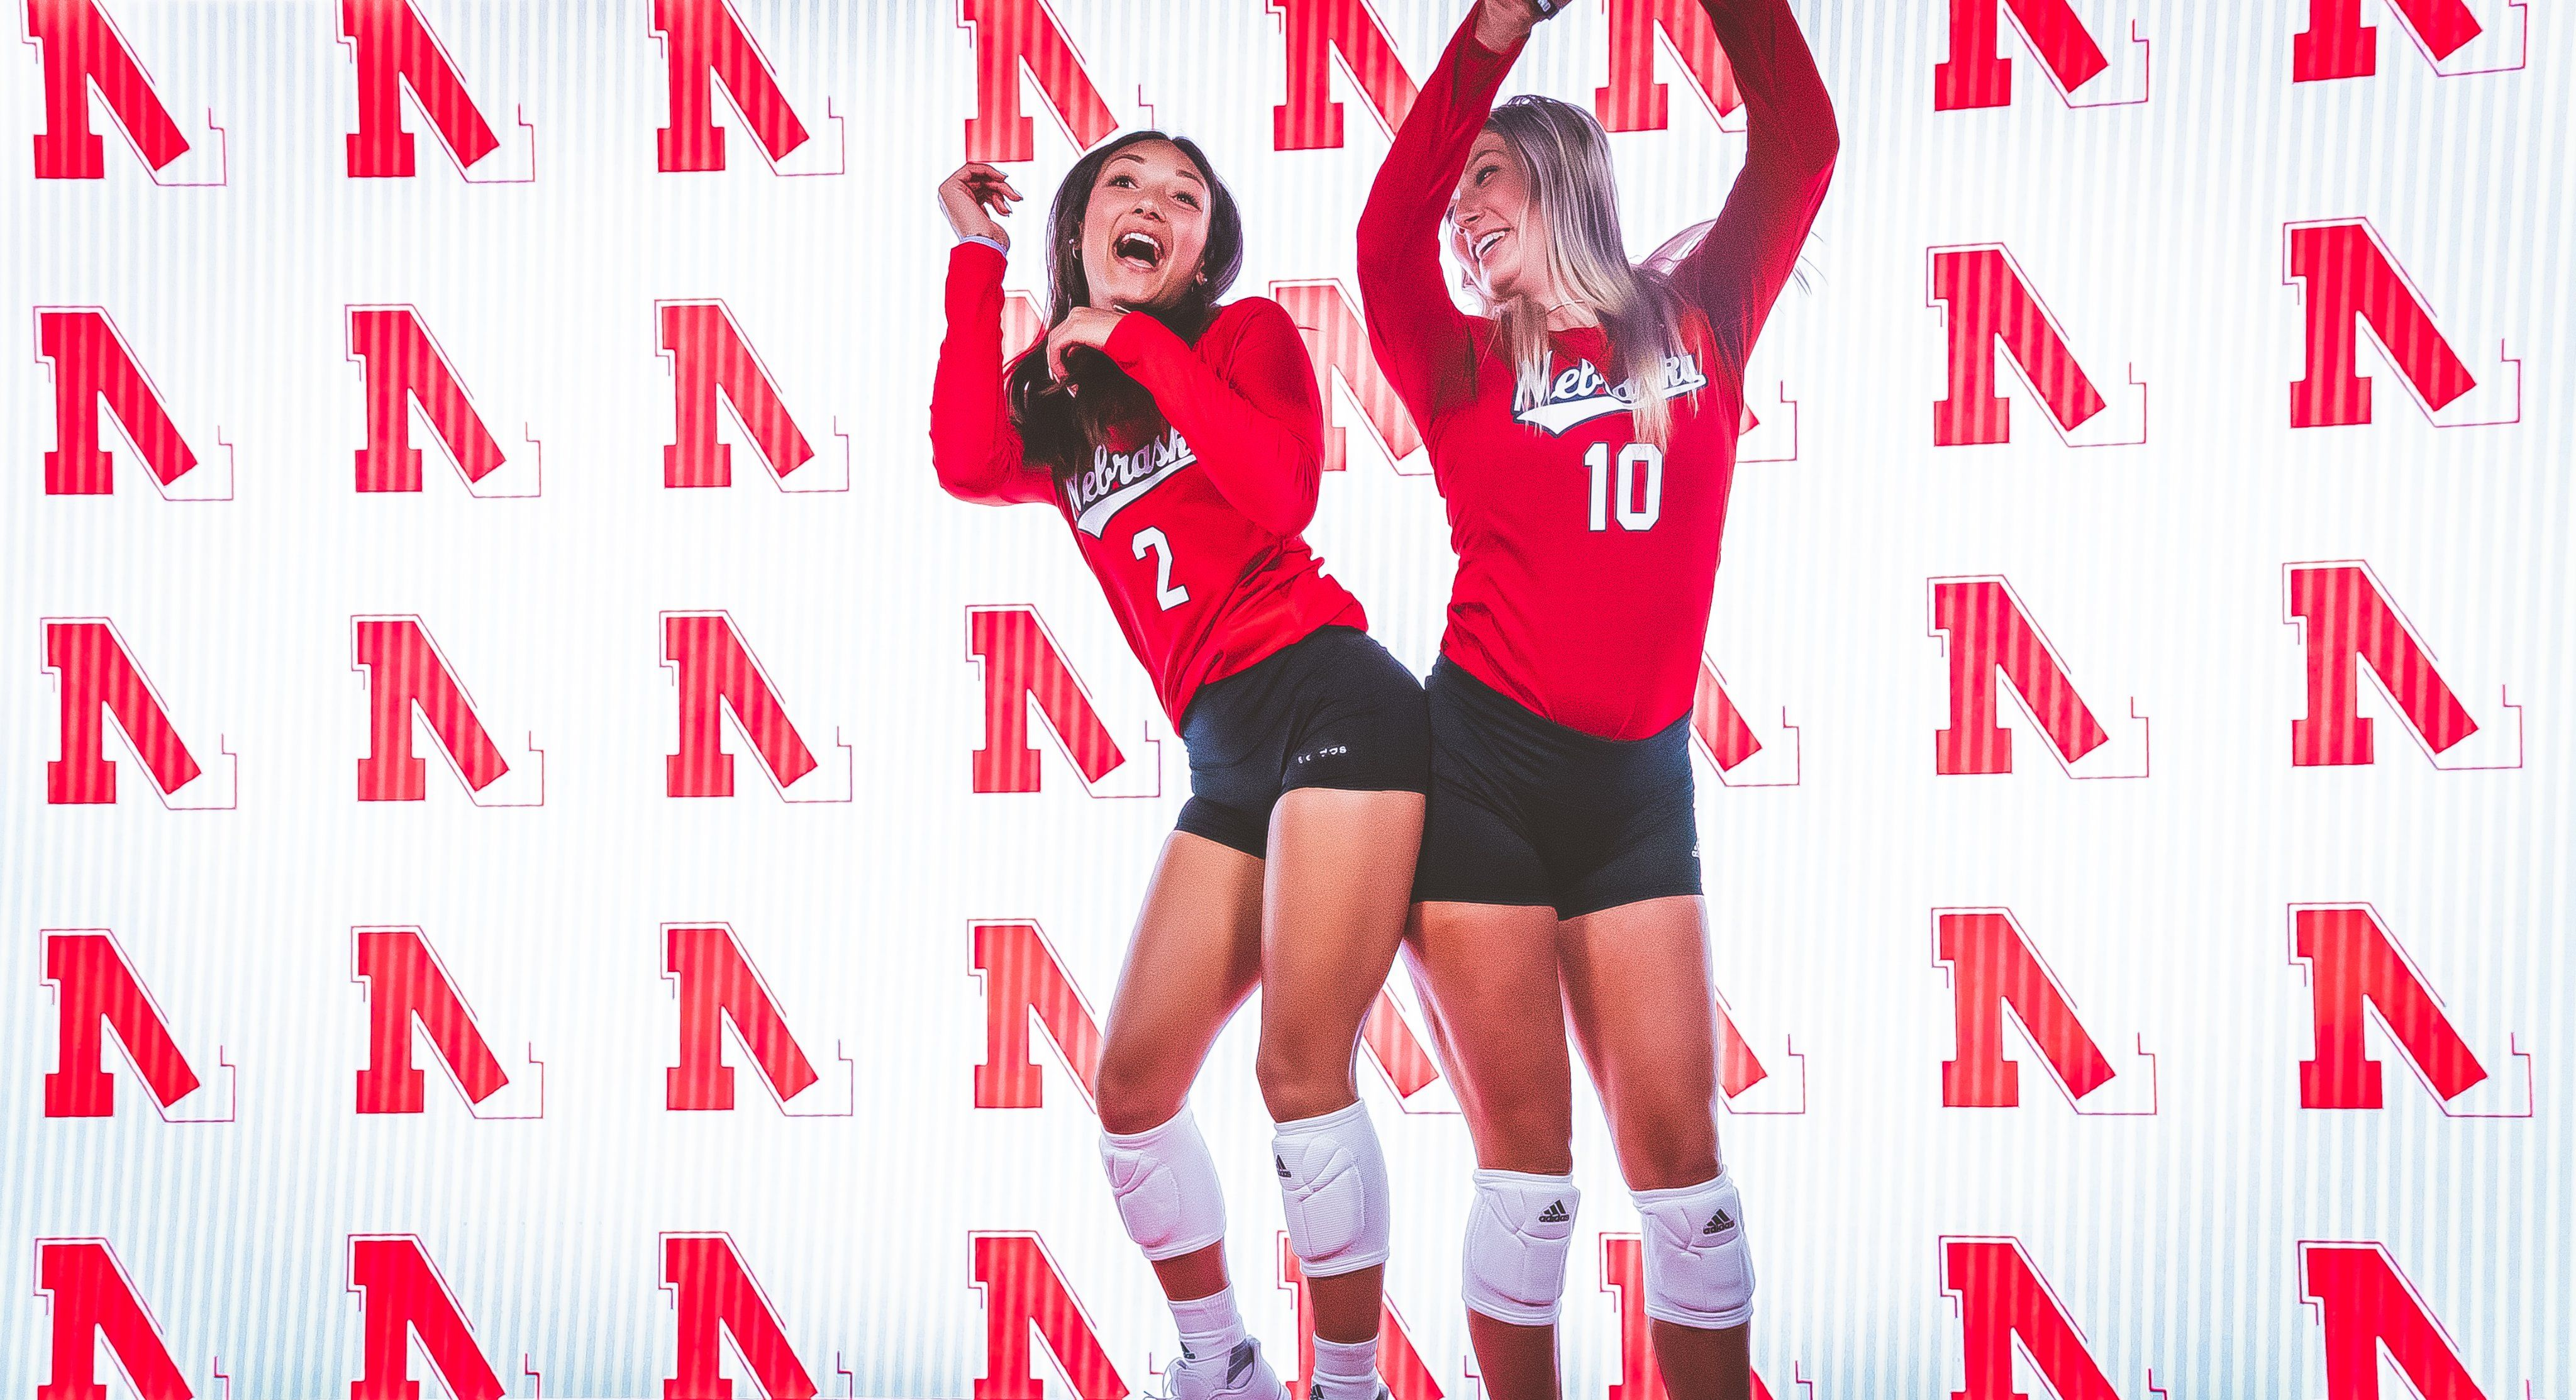 Husker Volleyball On Twitter In 2020 Ncaa Champion Volleyball Husker